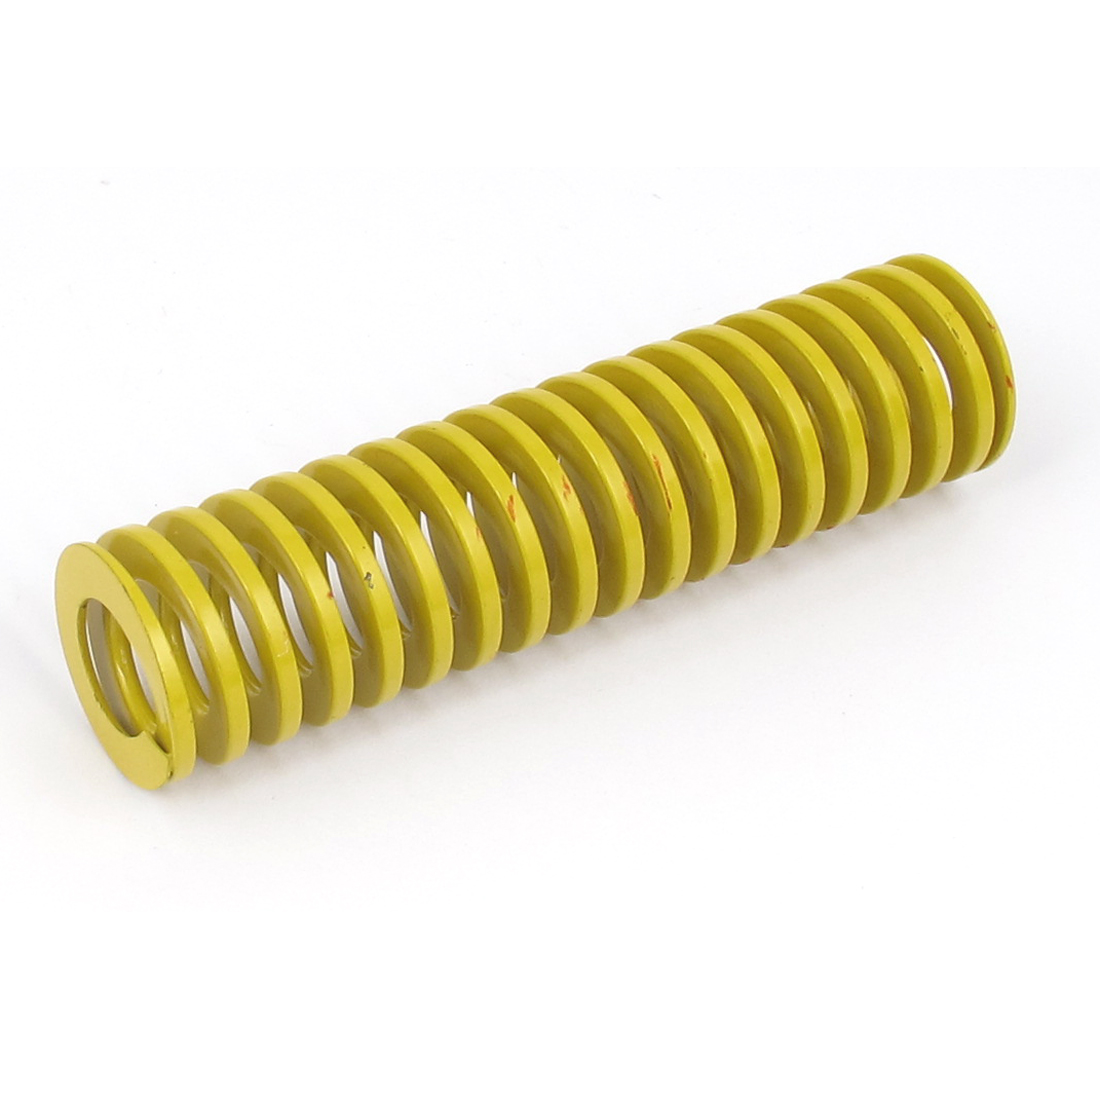 25mm OD 100mm Long Lightest Load Spiral Stamping Compression Die Spring Yellow